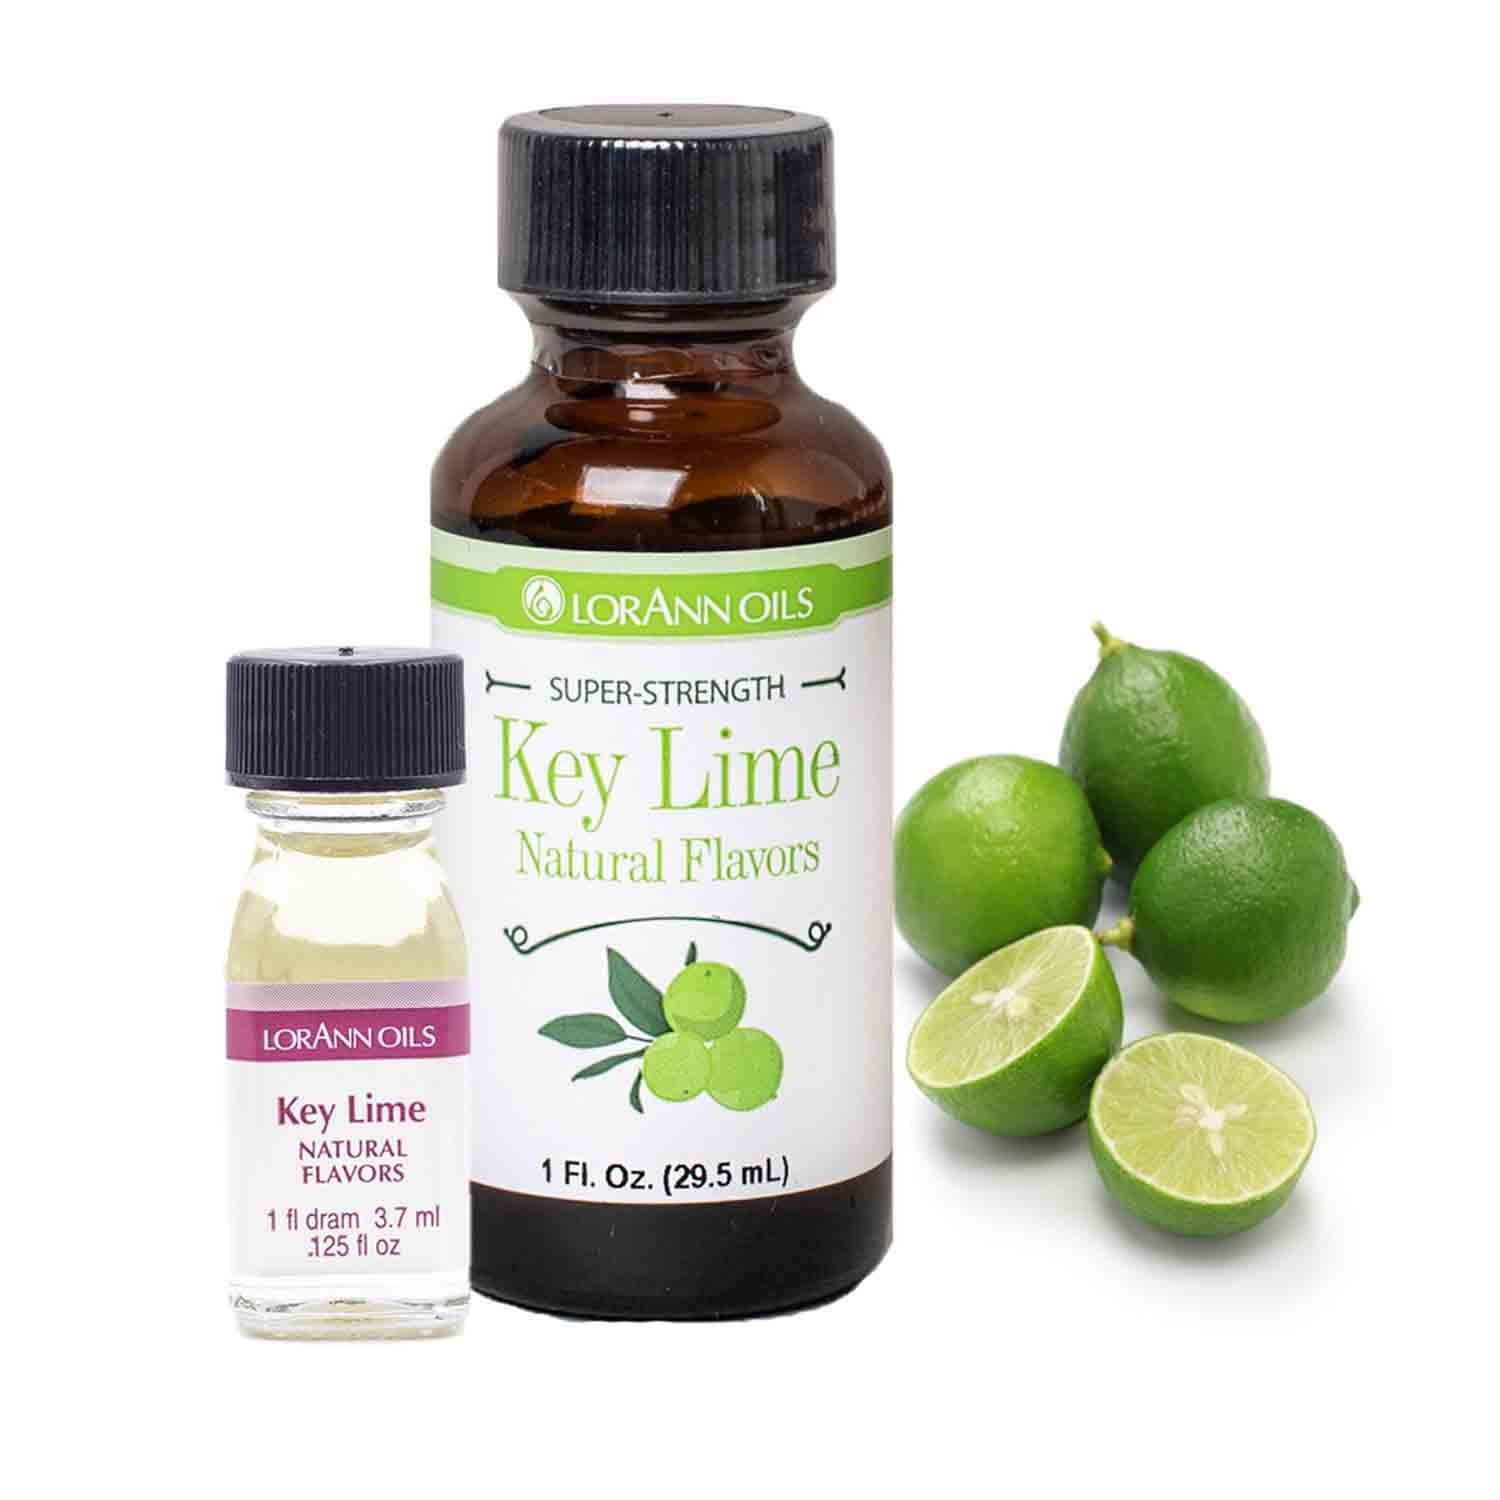 Key Lime Super-Strength Flavor